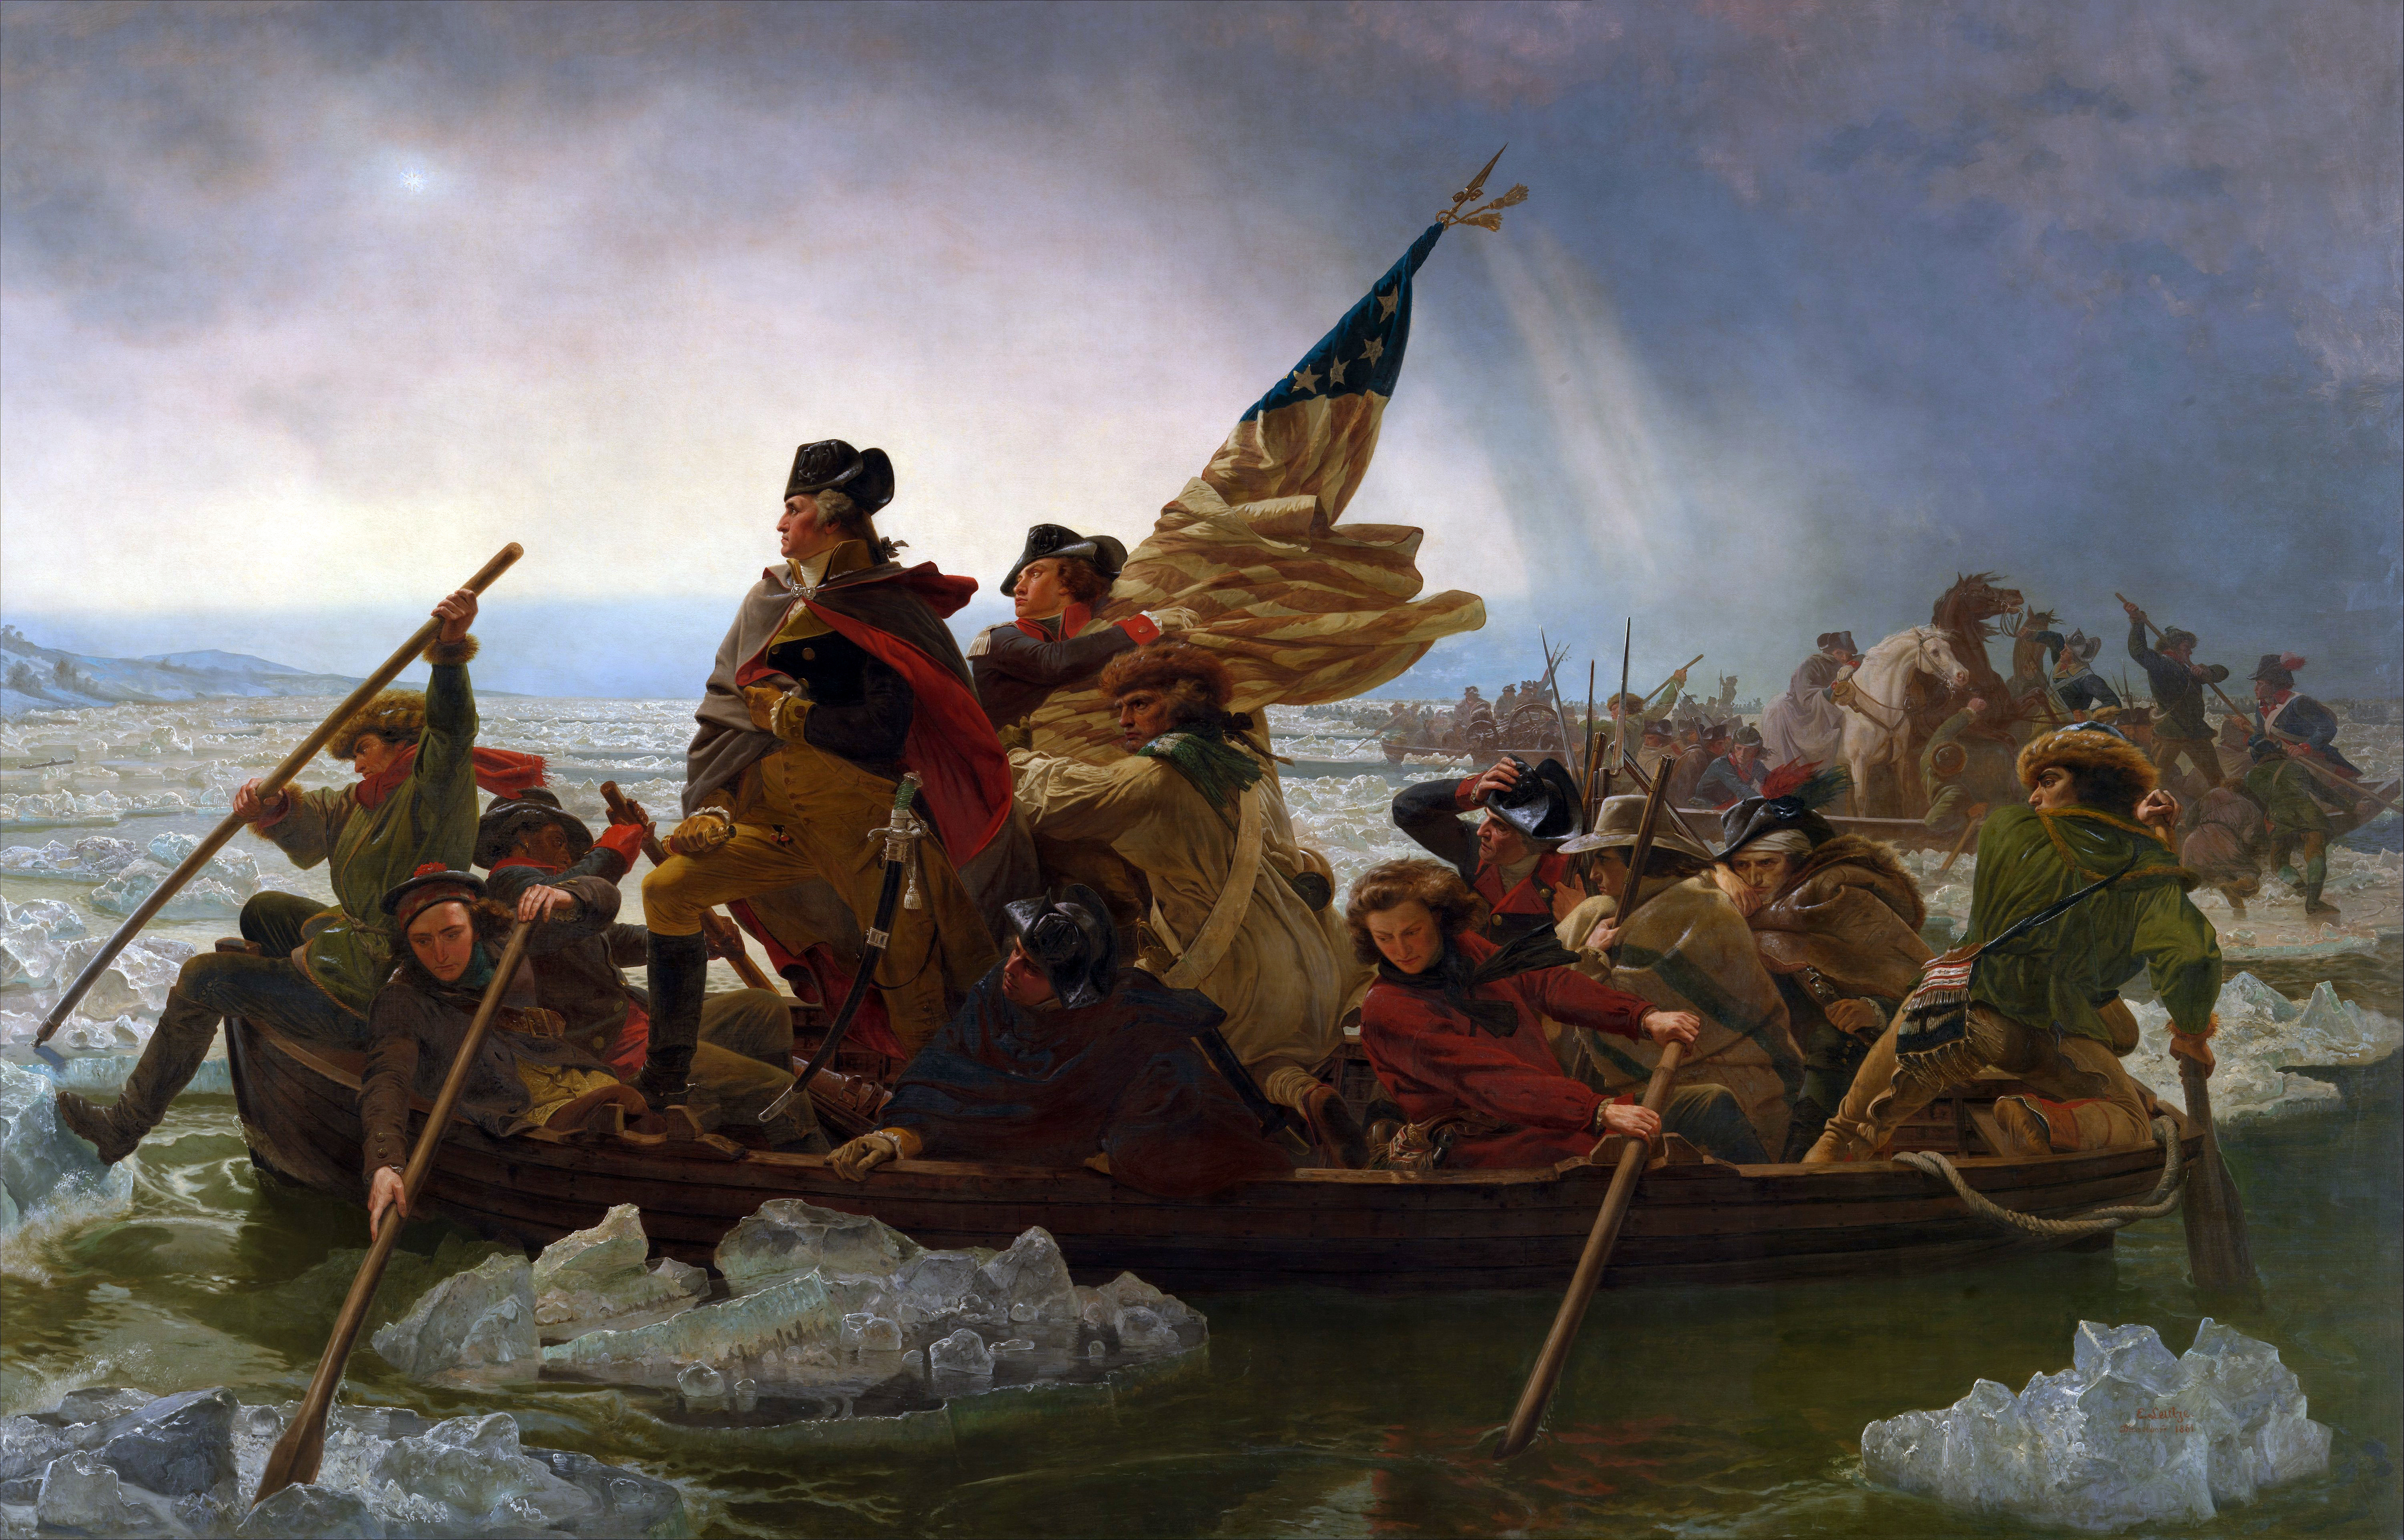 https://upload.wikimedia.org/wikipedia/commons/9/95/Washington_Crossing_the_Delaware_by_Emanuel_Leutze%2C_MMA-NYC%2C_1851.jpg